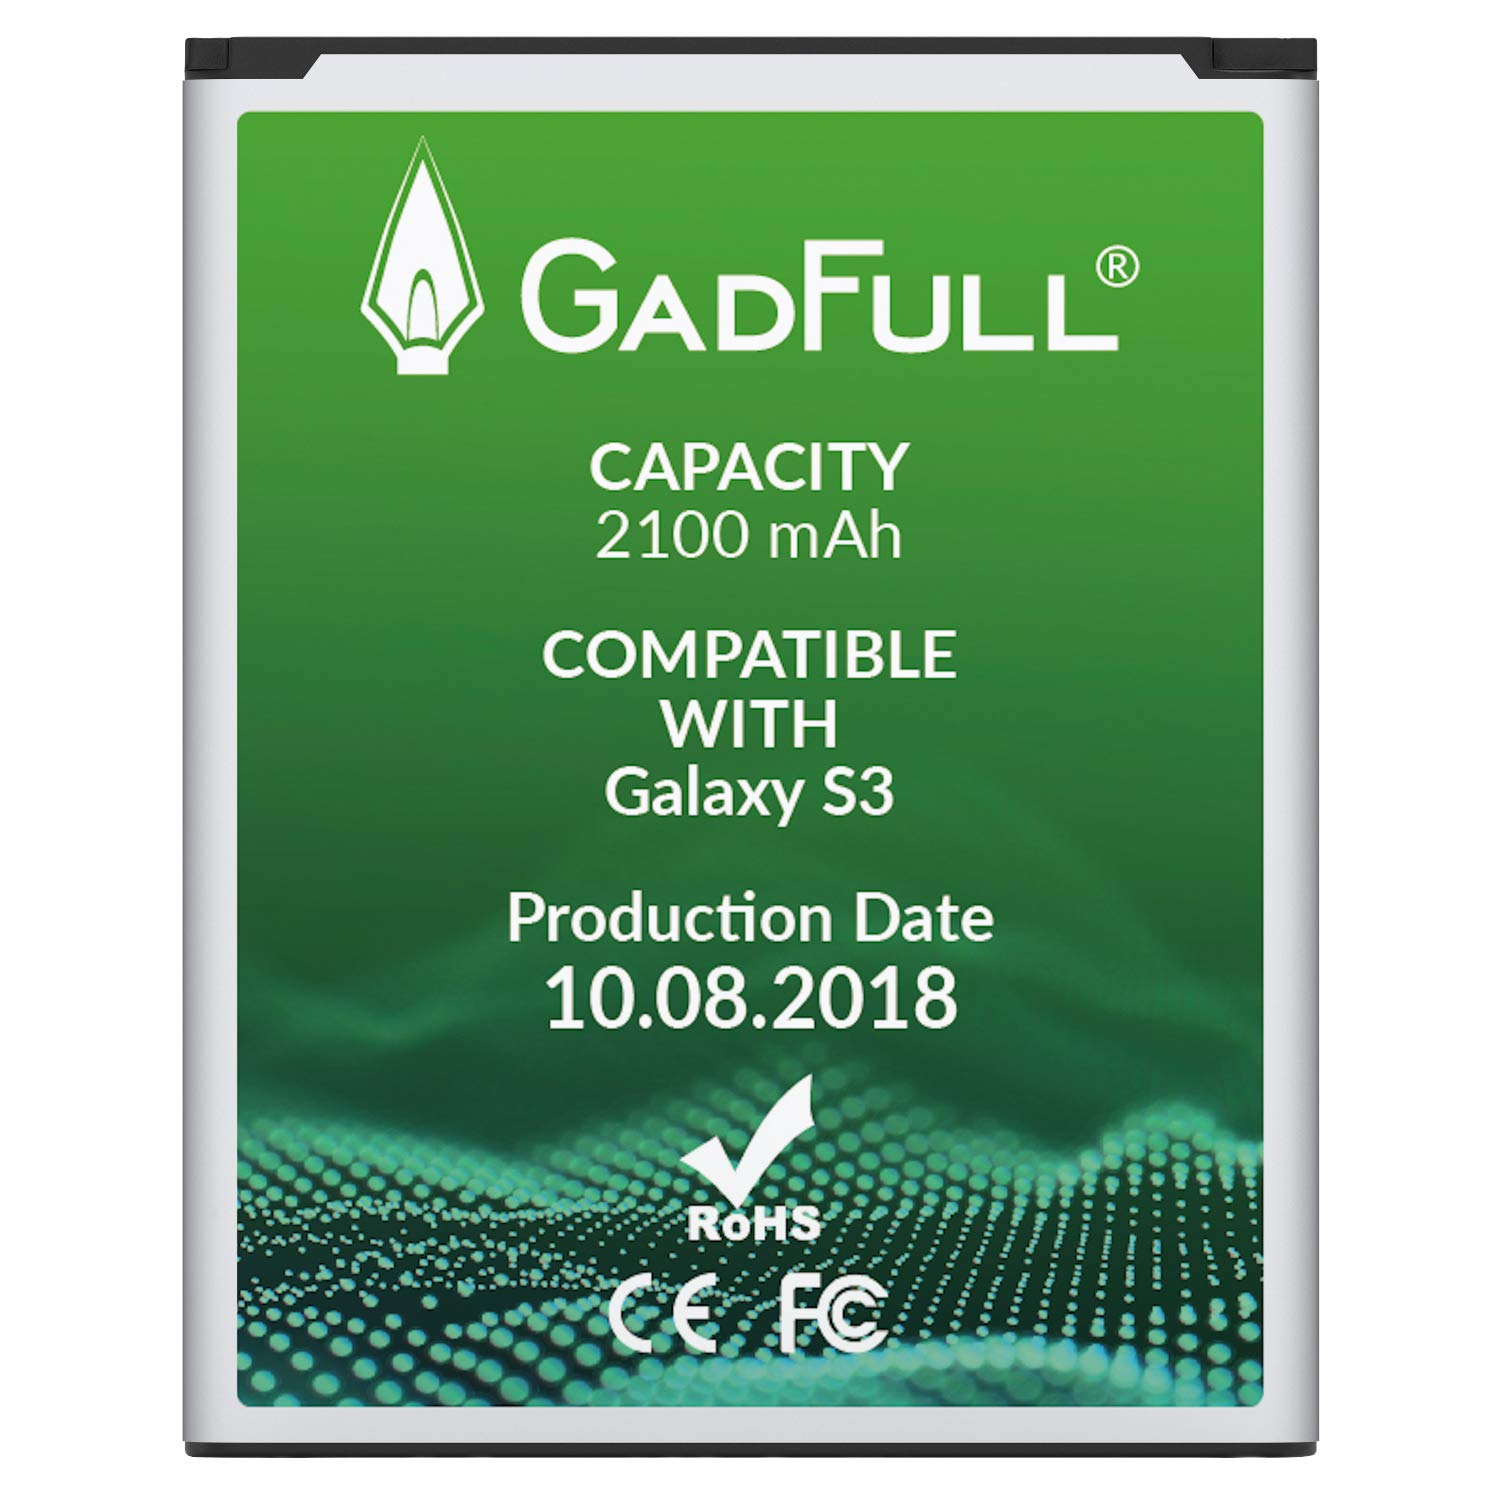 GadFull Battery for Samsung Galaxy S3 | Production Date 2018 | Corresponds to The Original EB-L1G6LLU | Smartphone Model S3 i9300 | Galaxy S3 LTE i9305 |Perfect as Replacement Battery MB1002SA